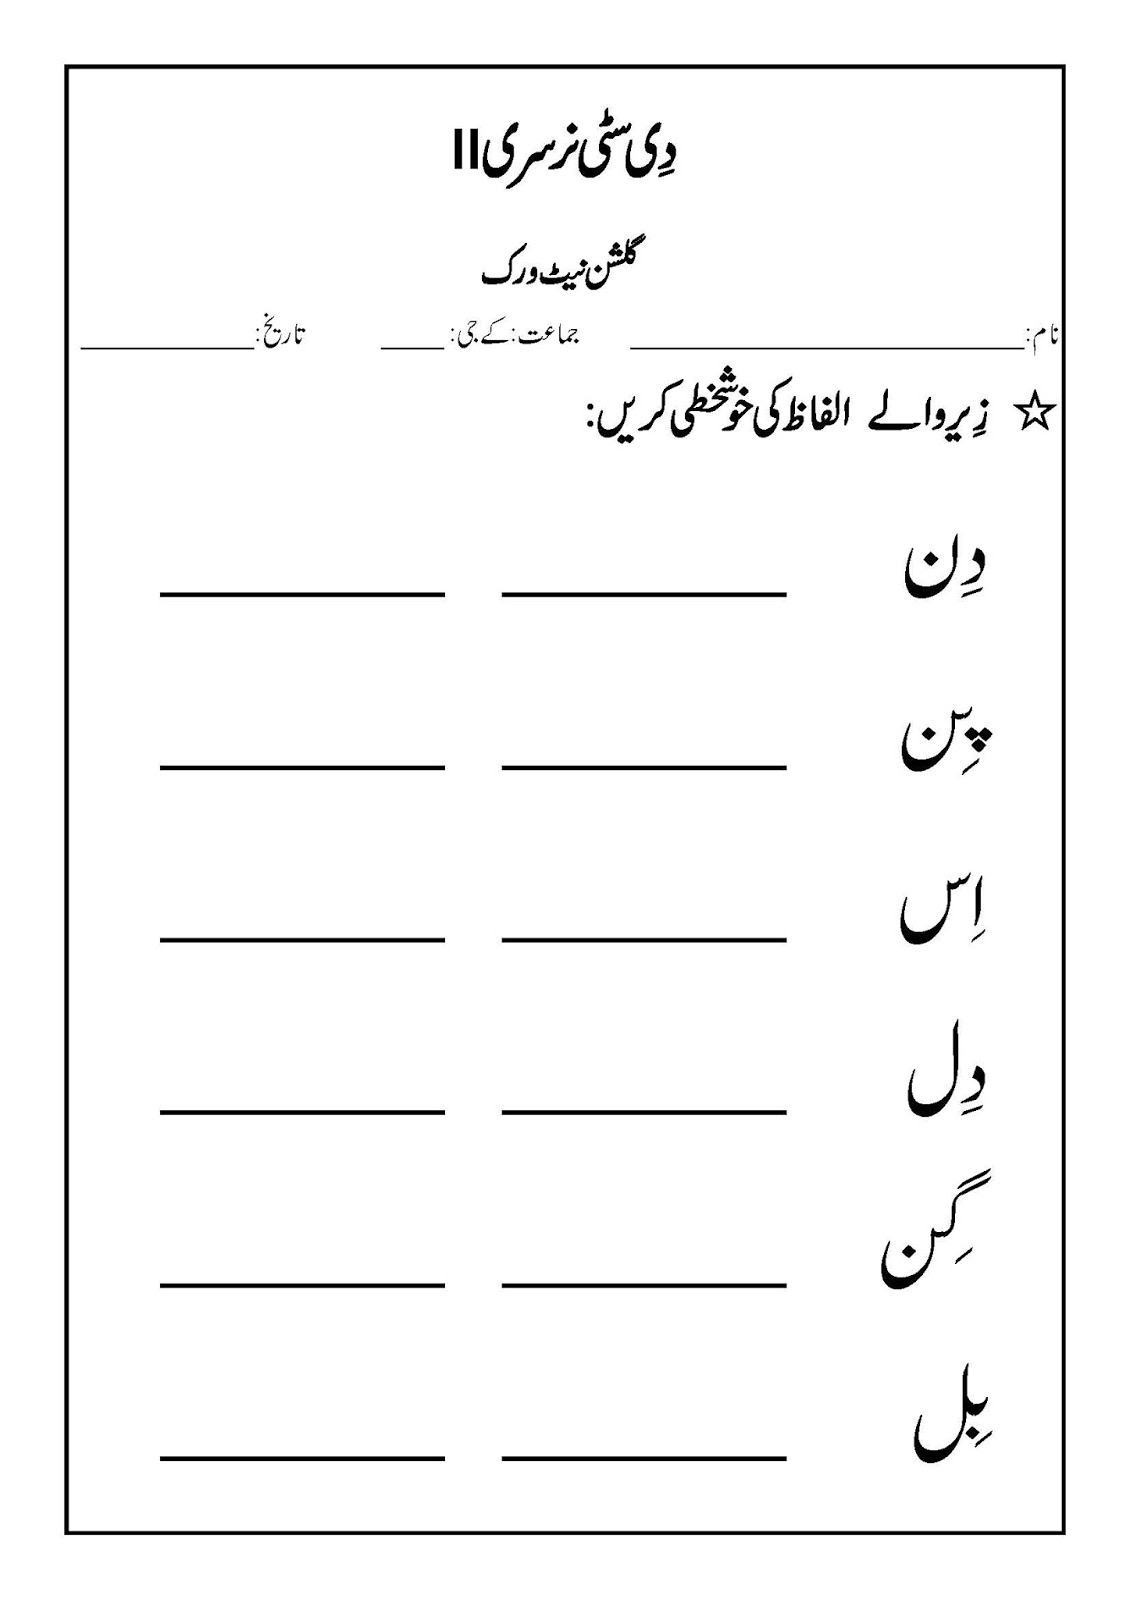 SR Gulshan The City Nursery-II: Urdu, KUWA and English